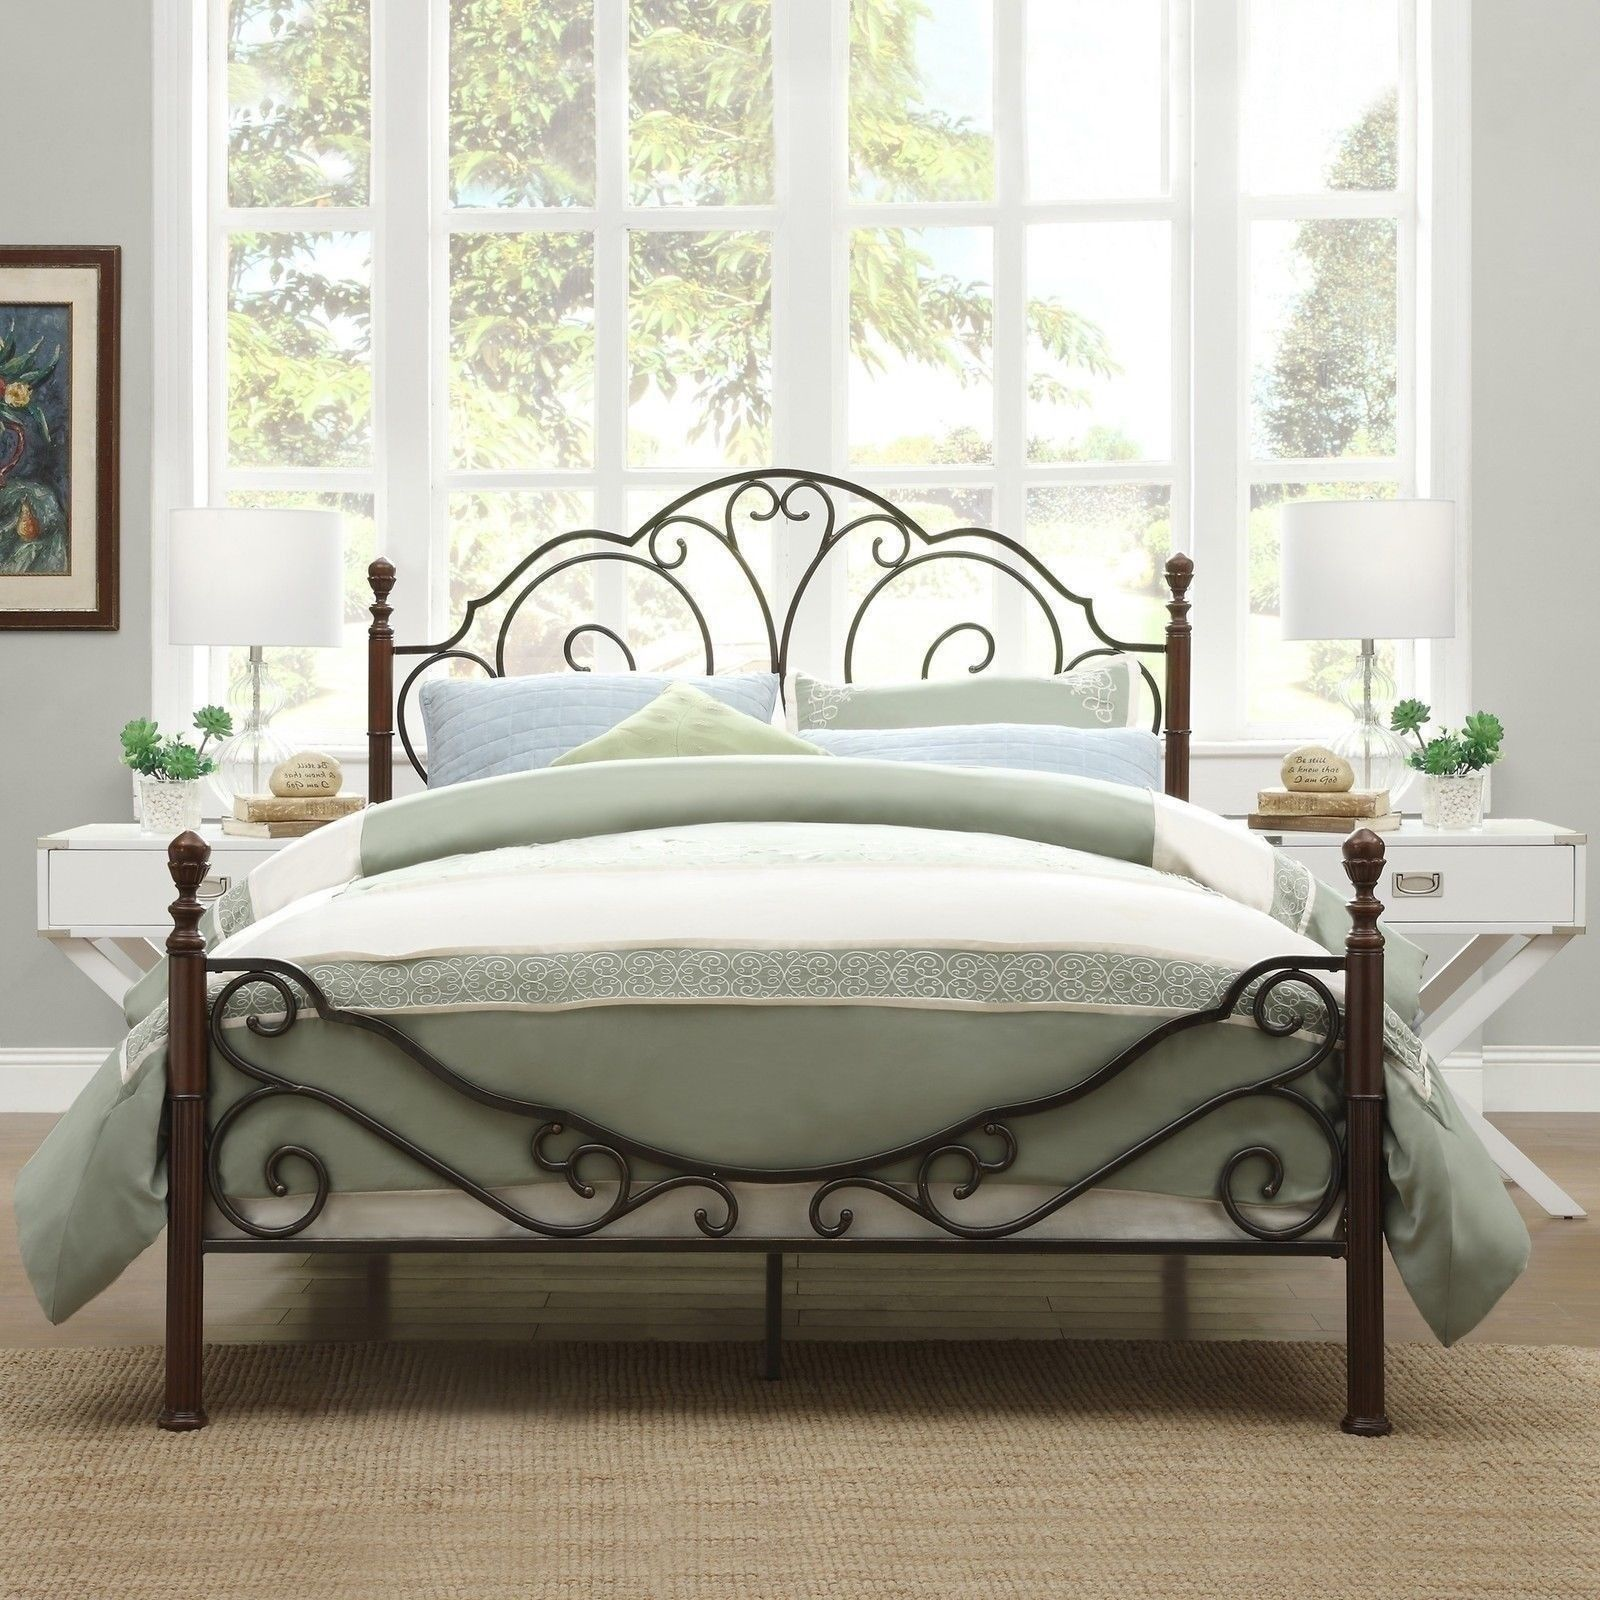 Wooden Bed Frames With Headboard Footboard | www.topsimages.com